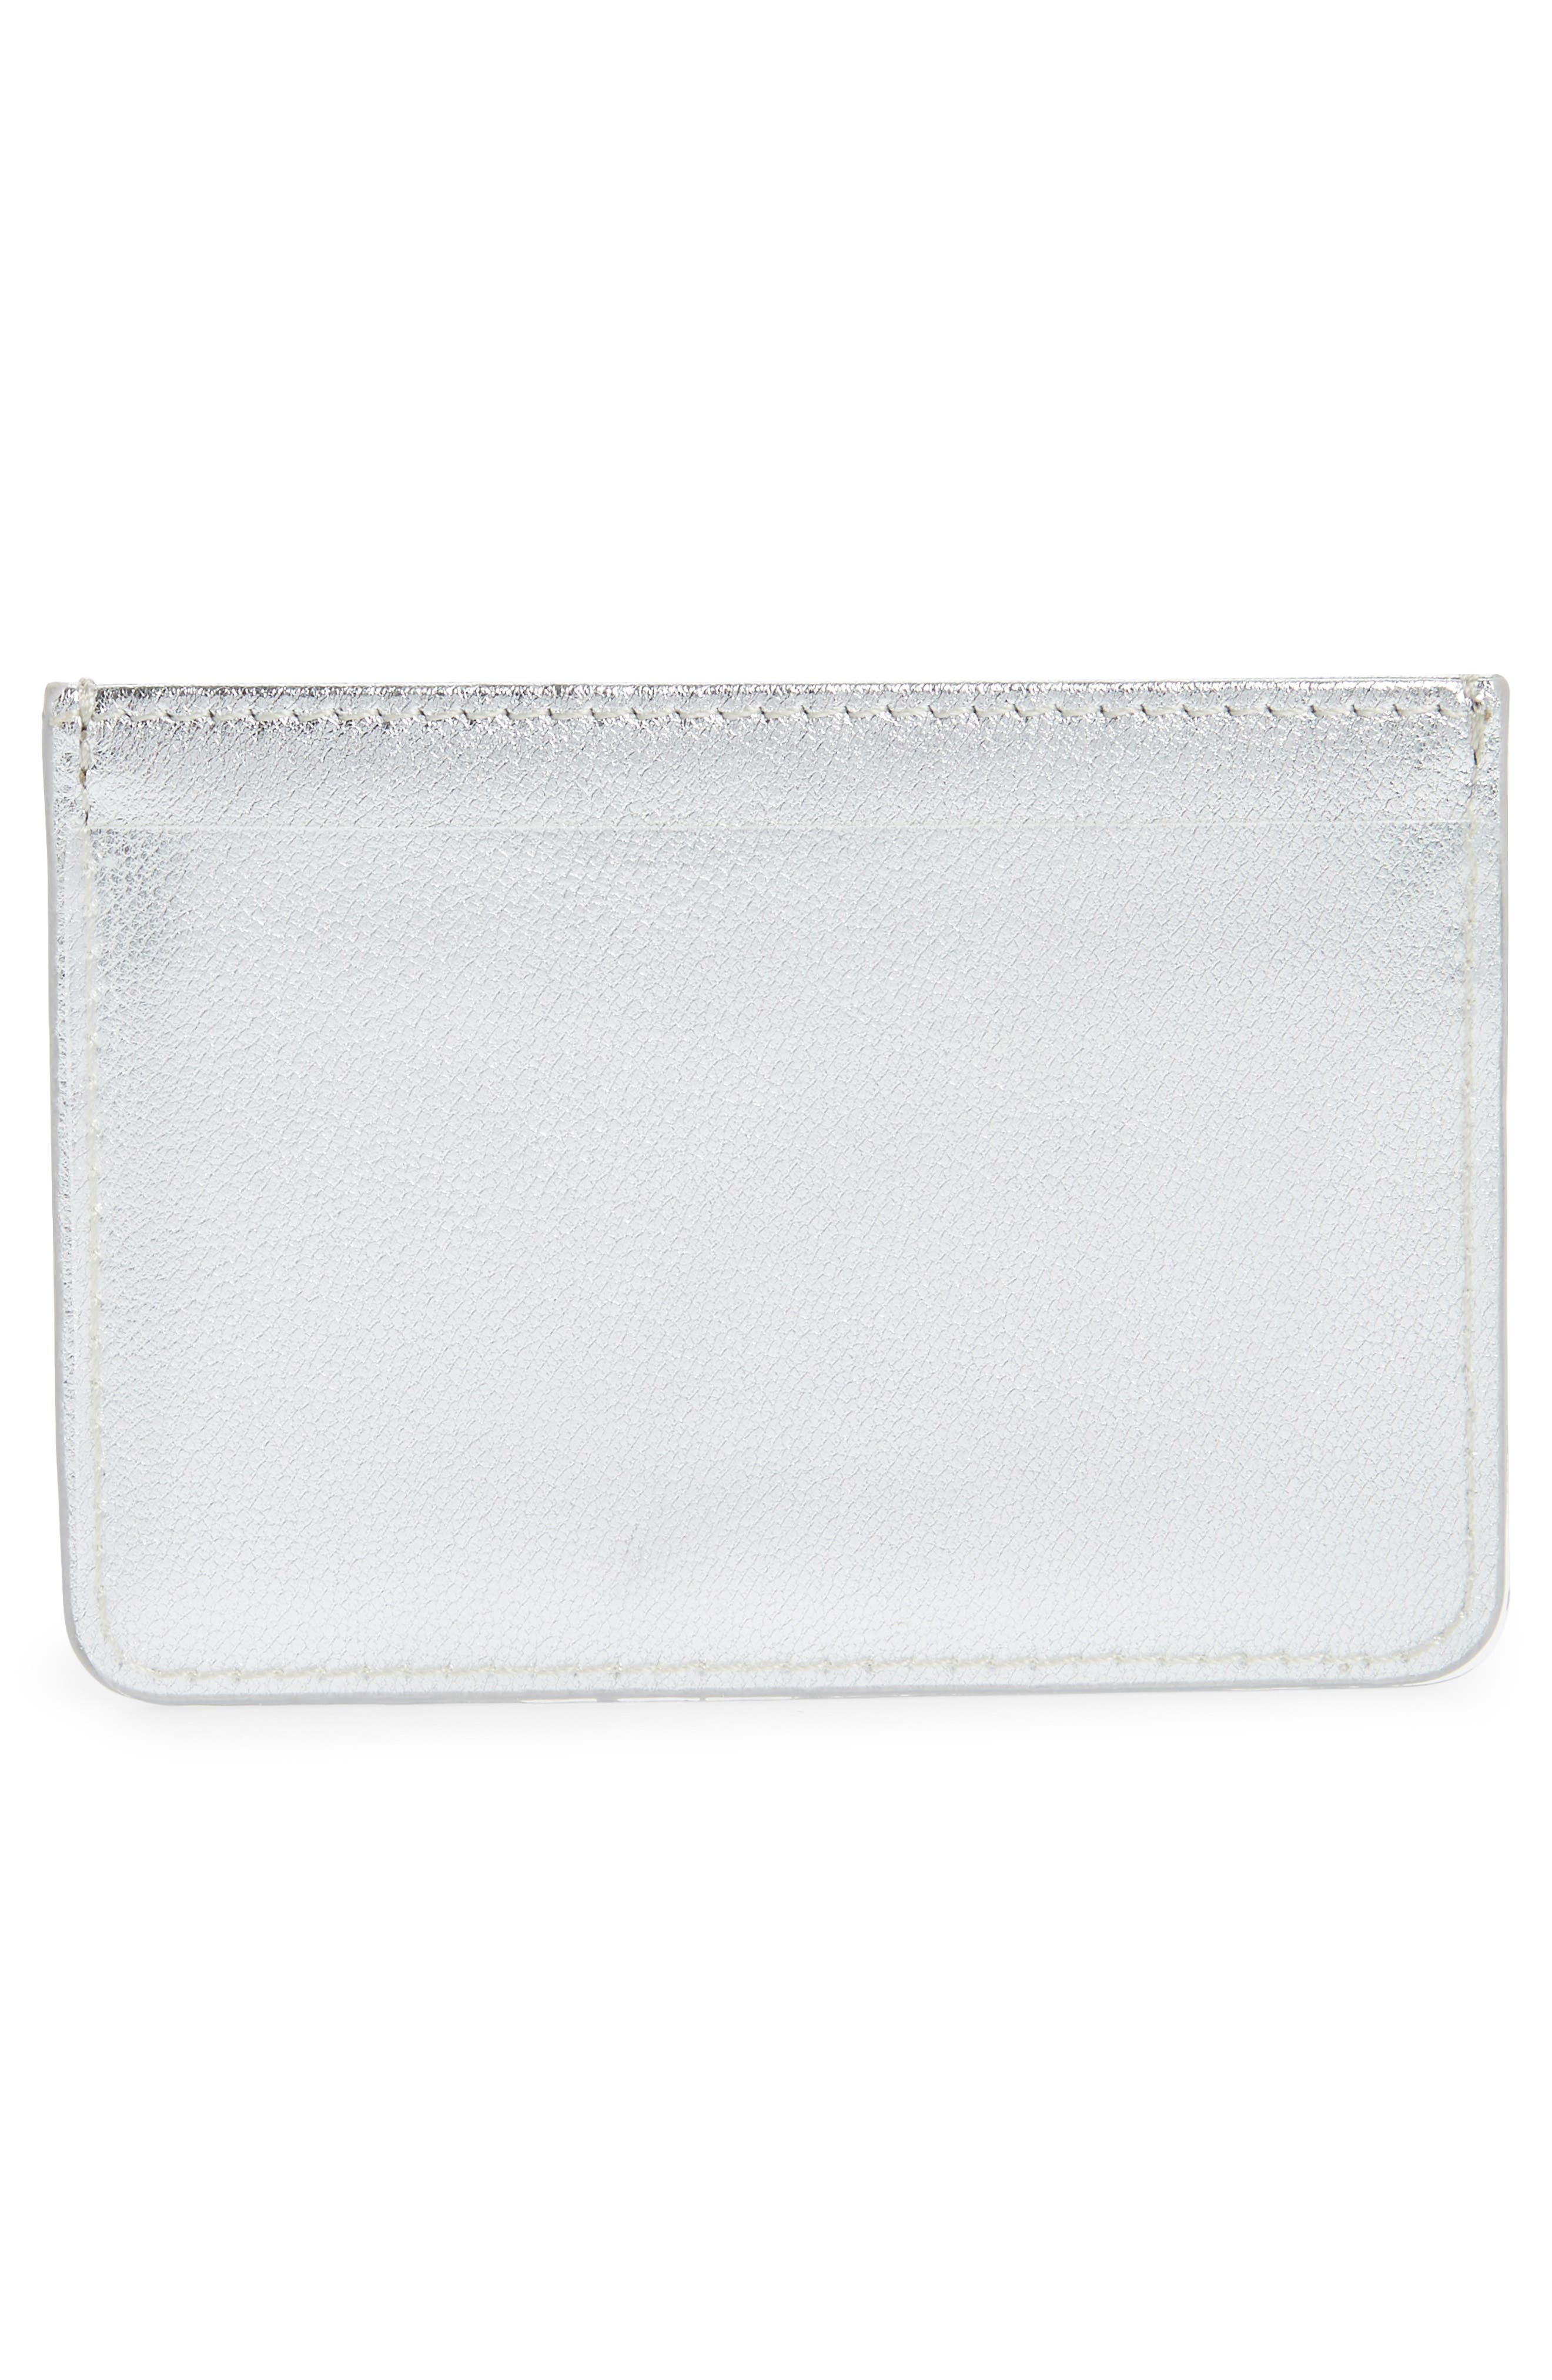 Privacy Leather Card Case,                             Alternate thumbnail 3, color,                             SILVER